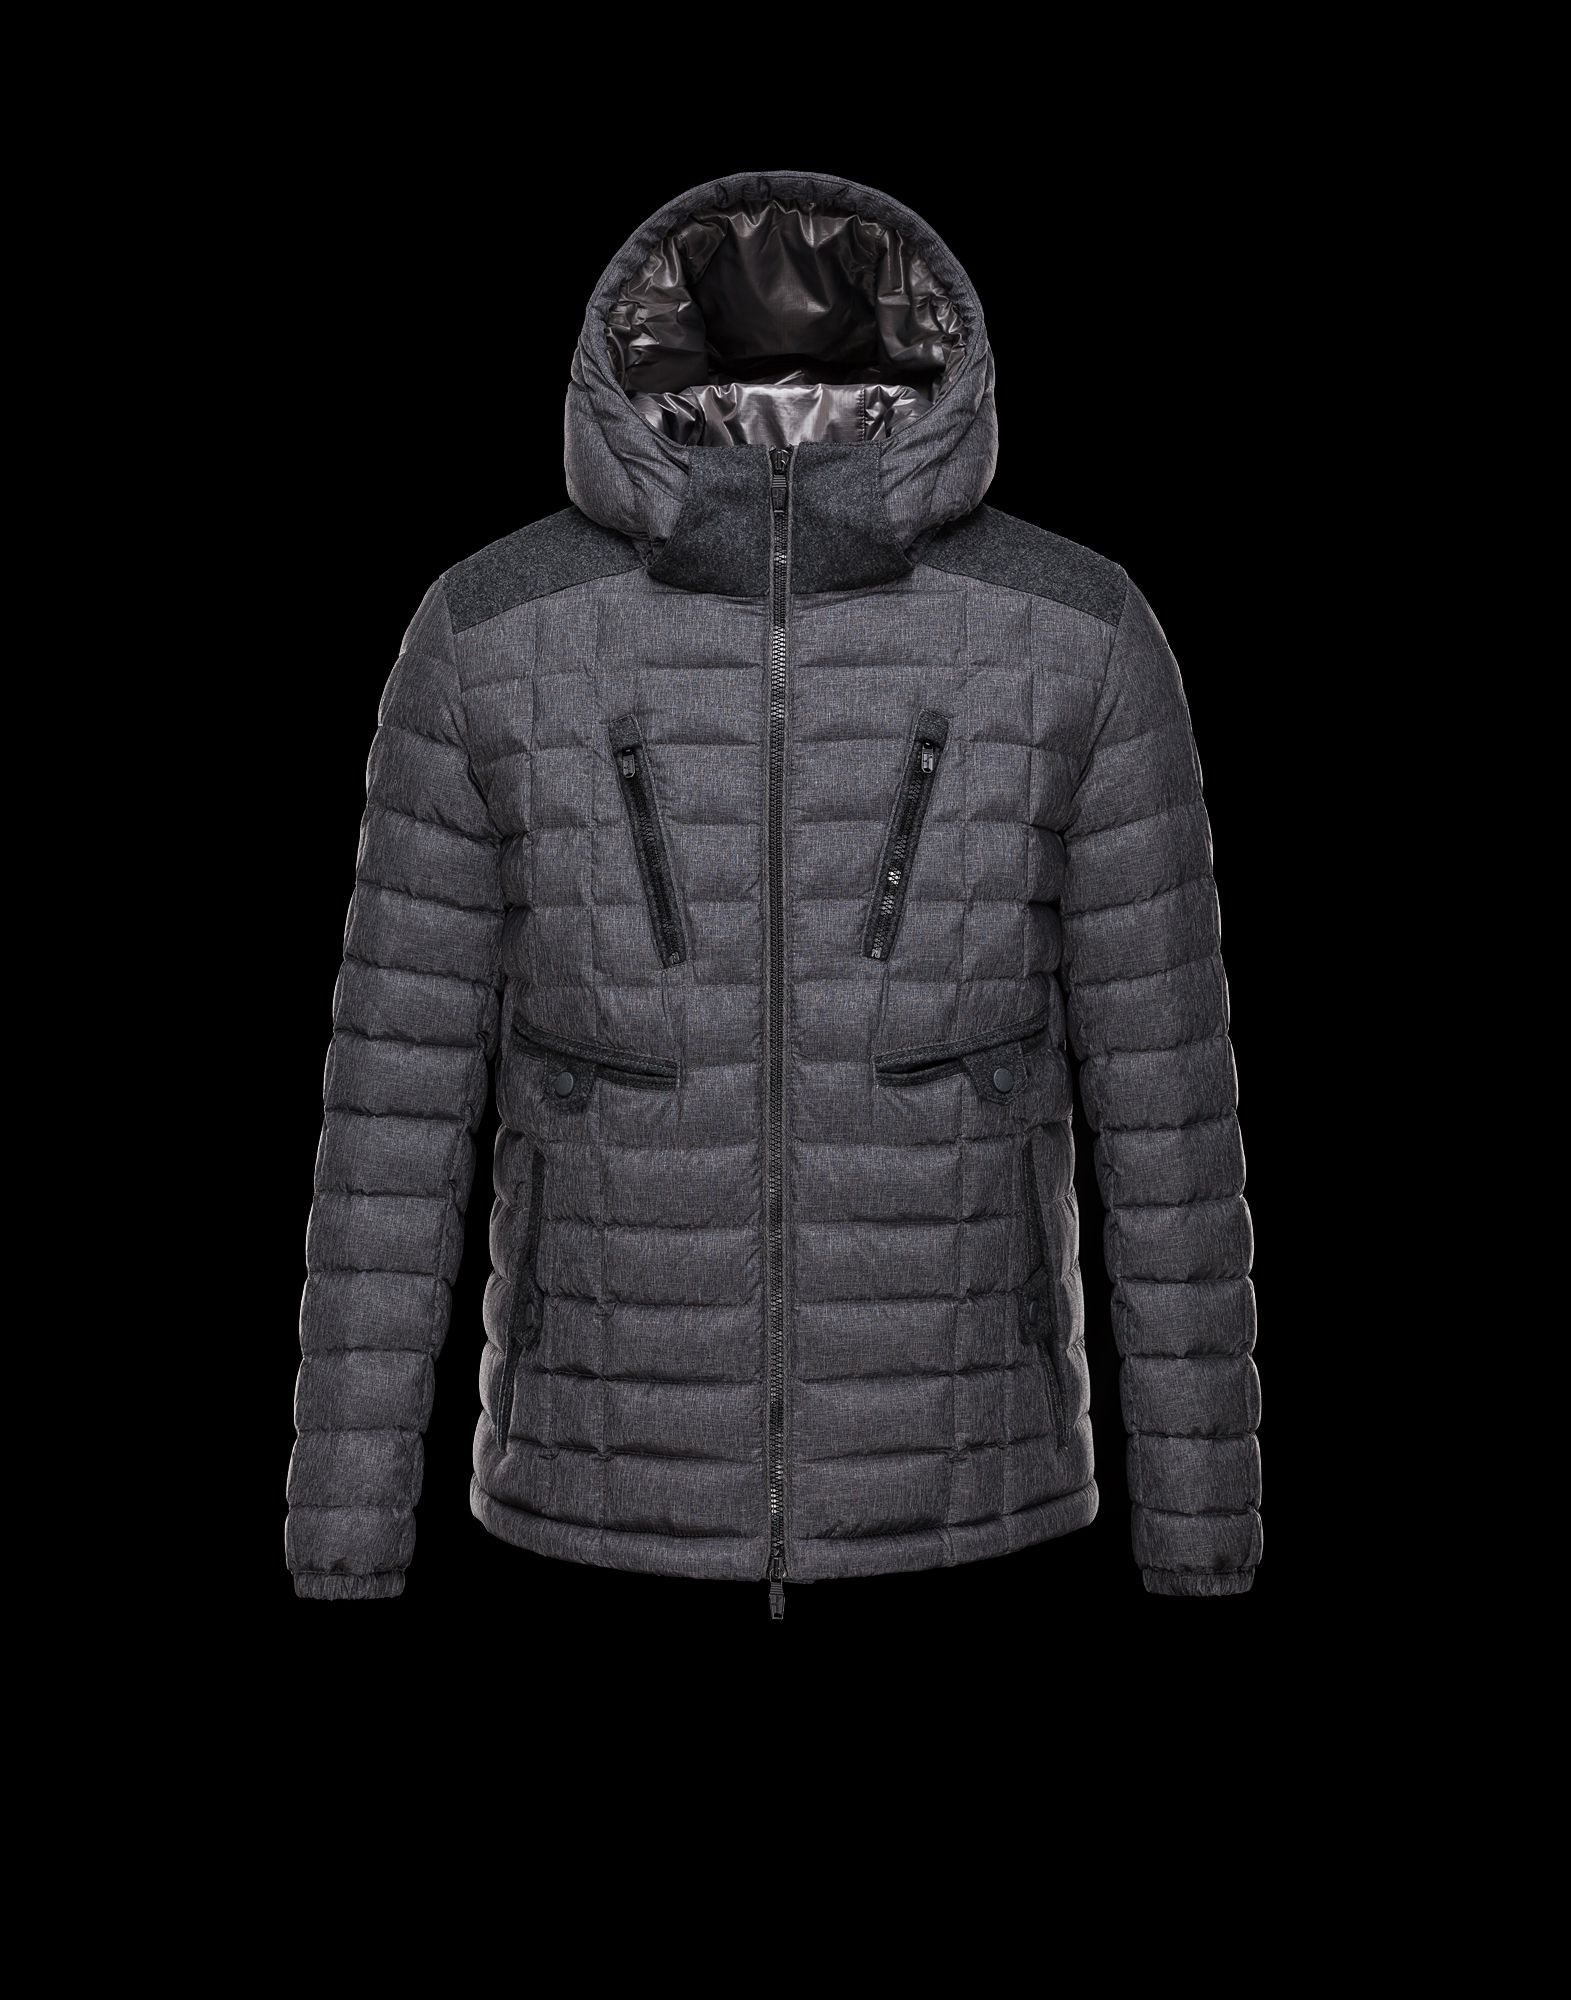 MONCLER MEN'S MAYA SHINY DOWN PUFFER JACKET WITH HOOD.